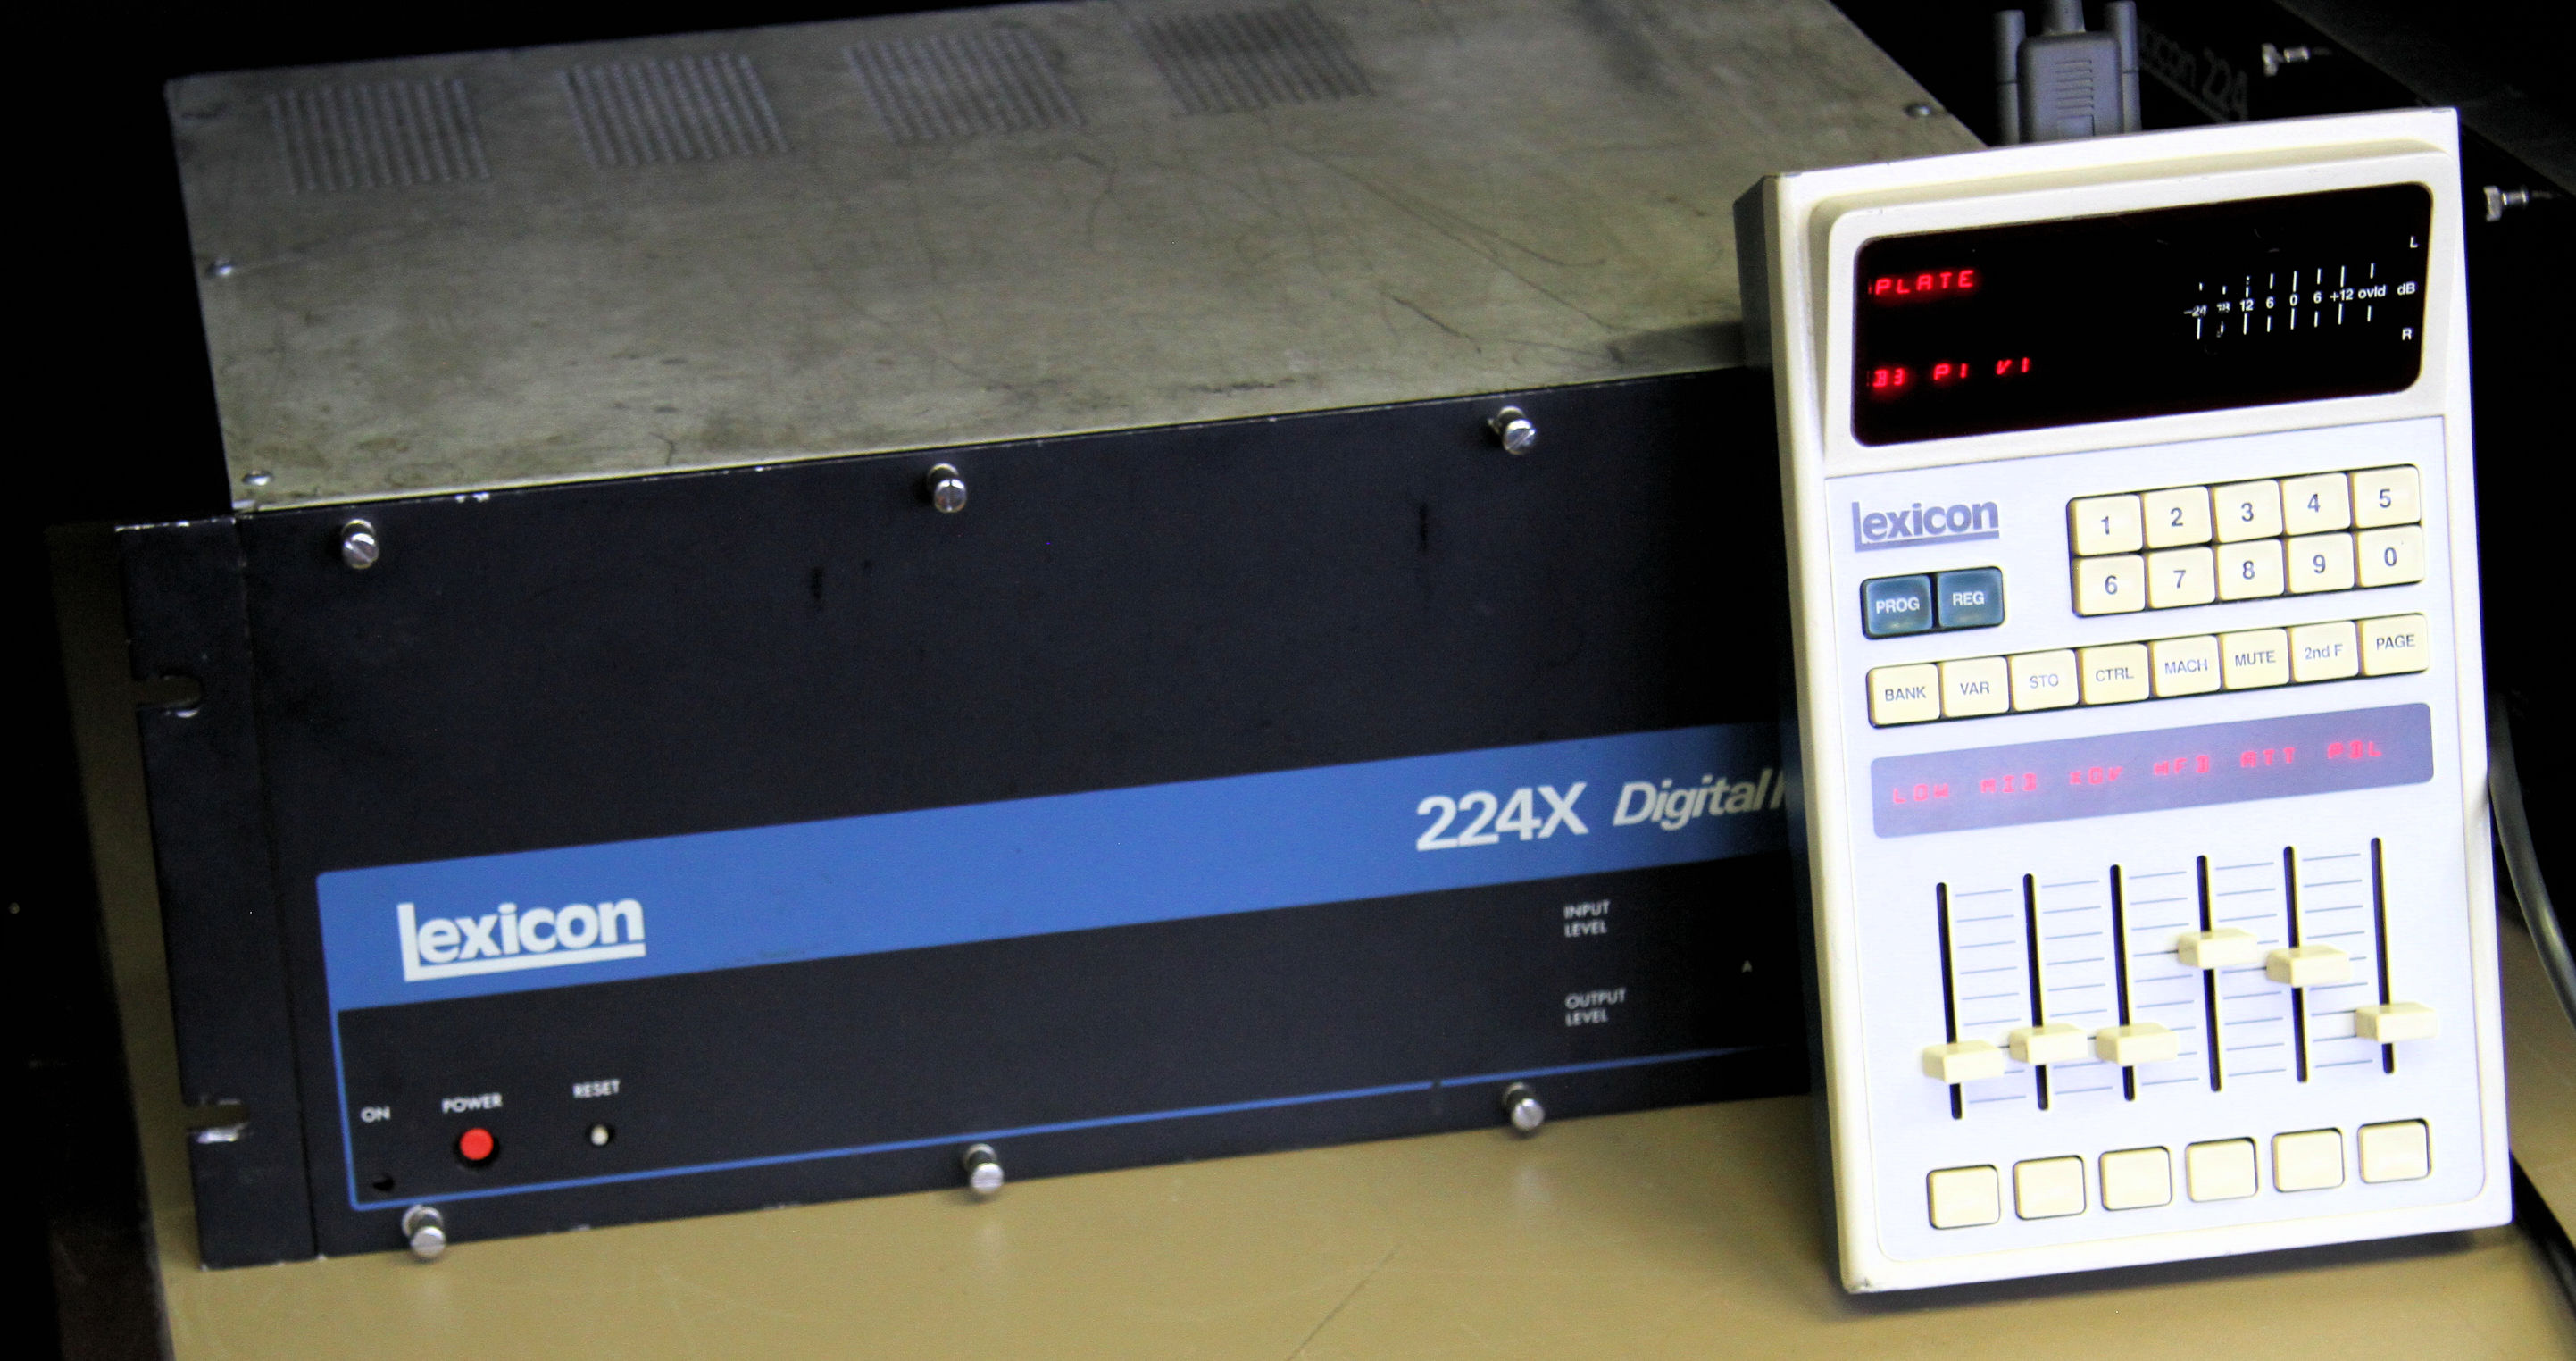 Lexicon 224XL digital reverb